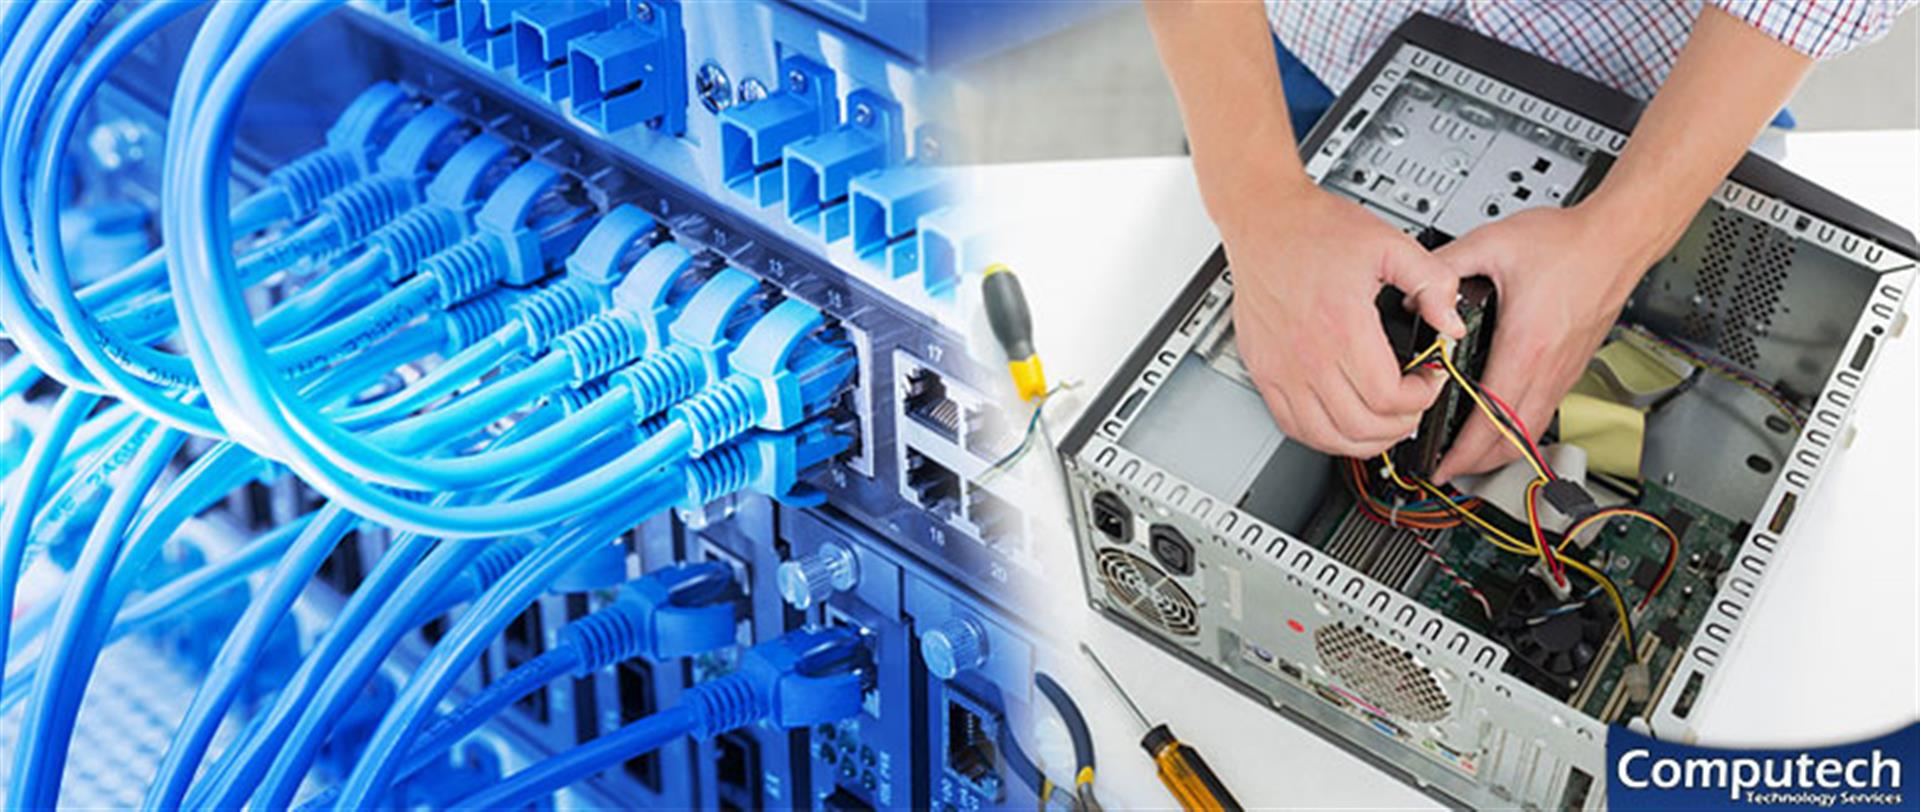 Daleville Alabama On Site Computer PC & Printer Repairs, Networks, Voice & Data Low Voltage Cabling Services